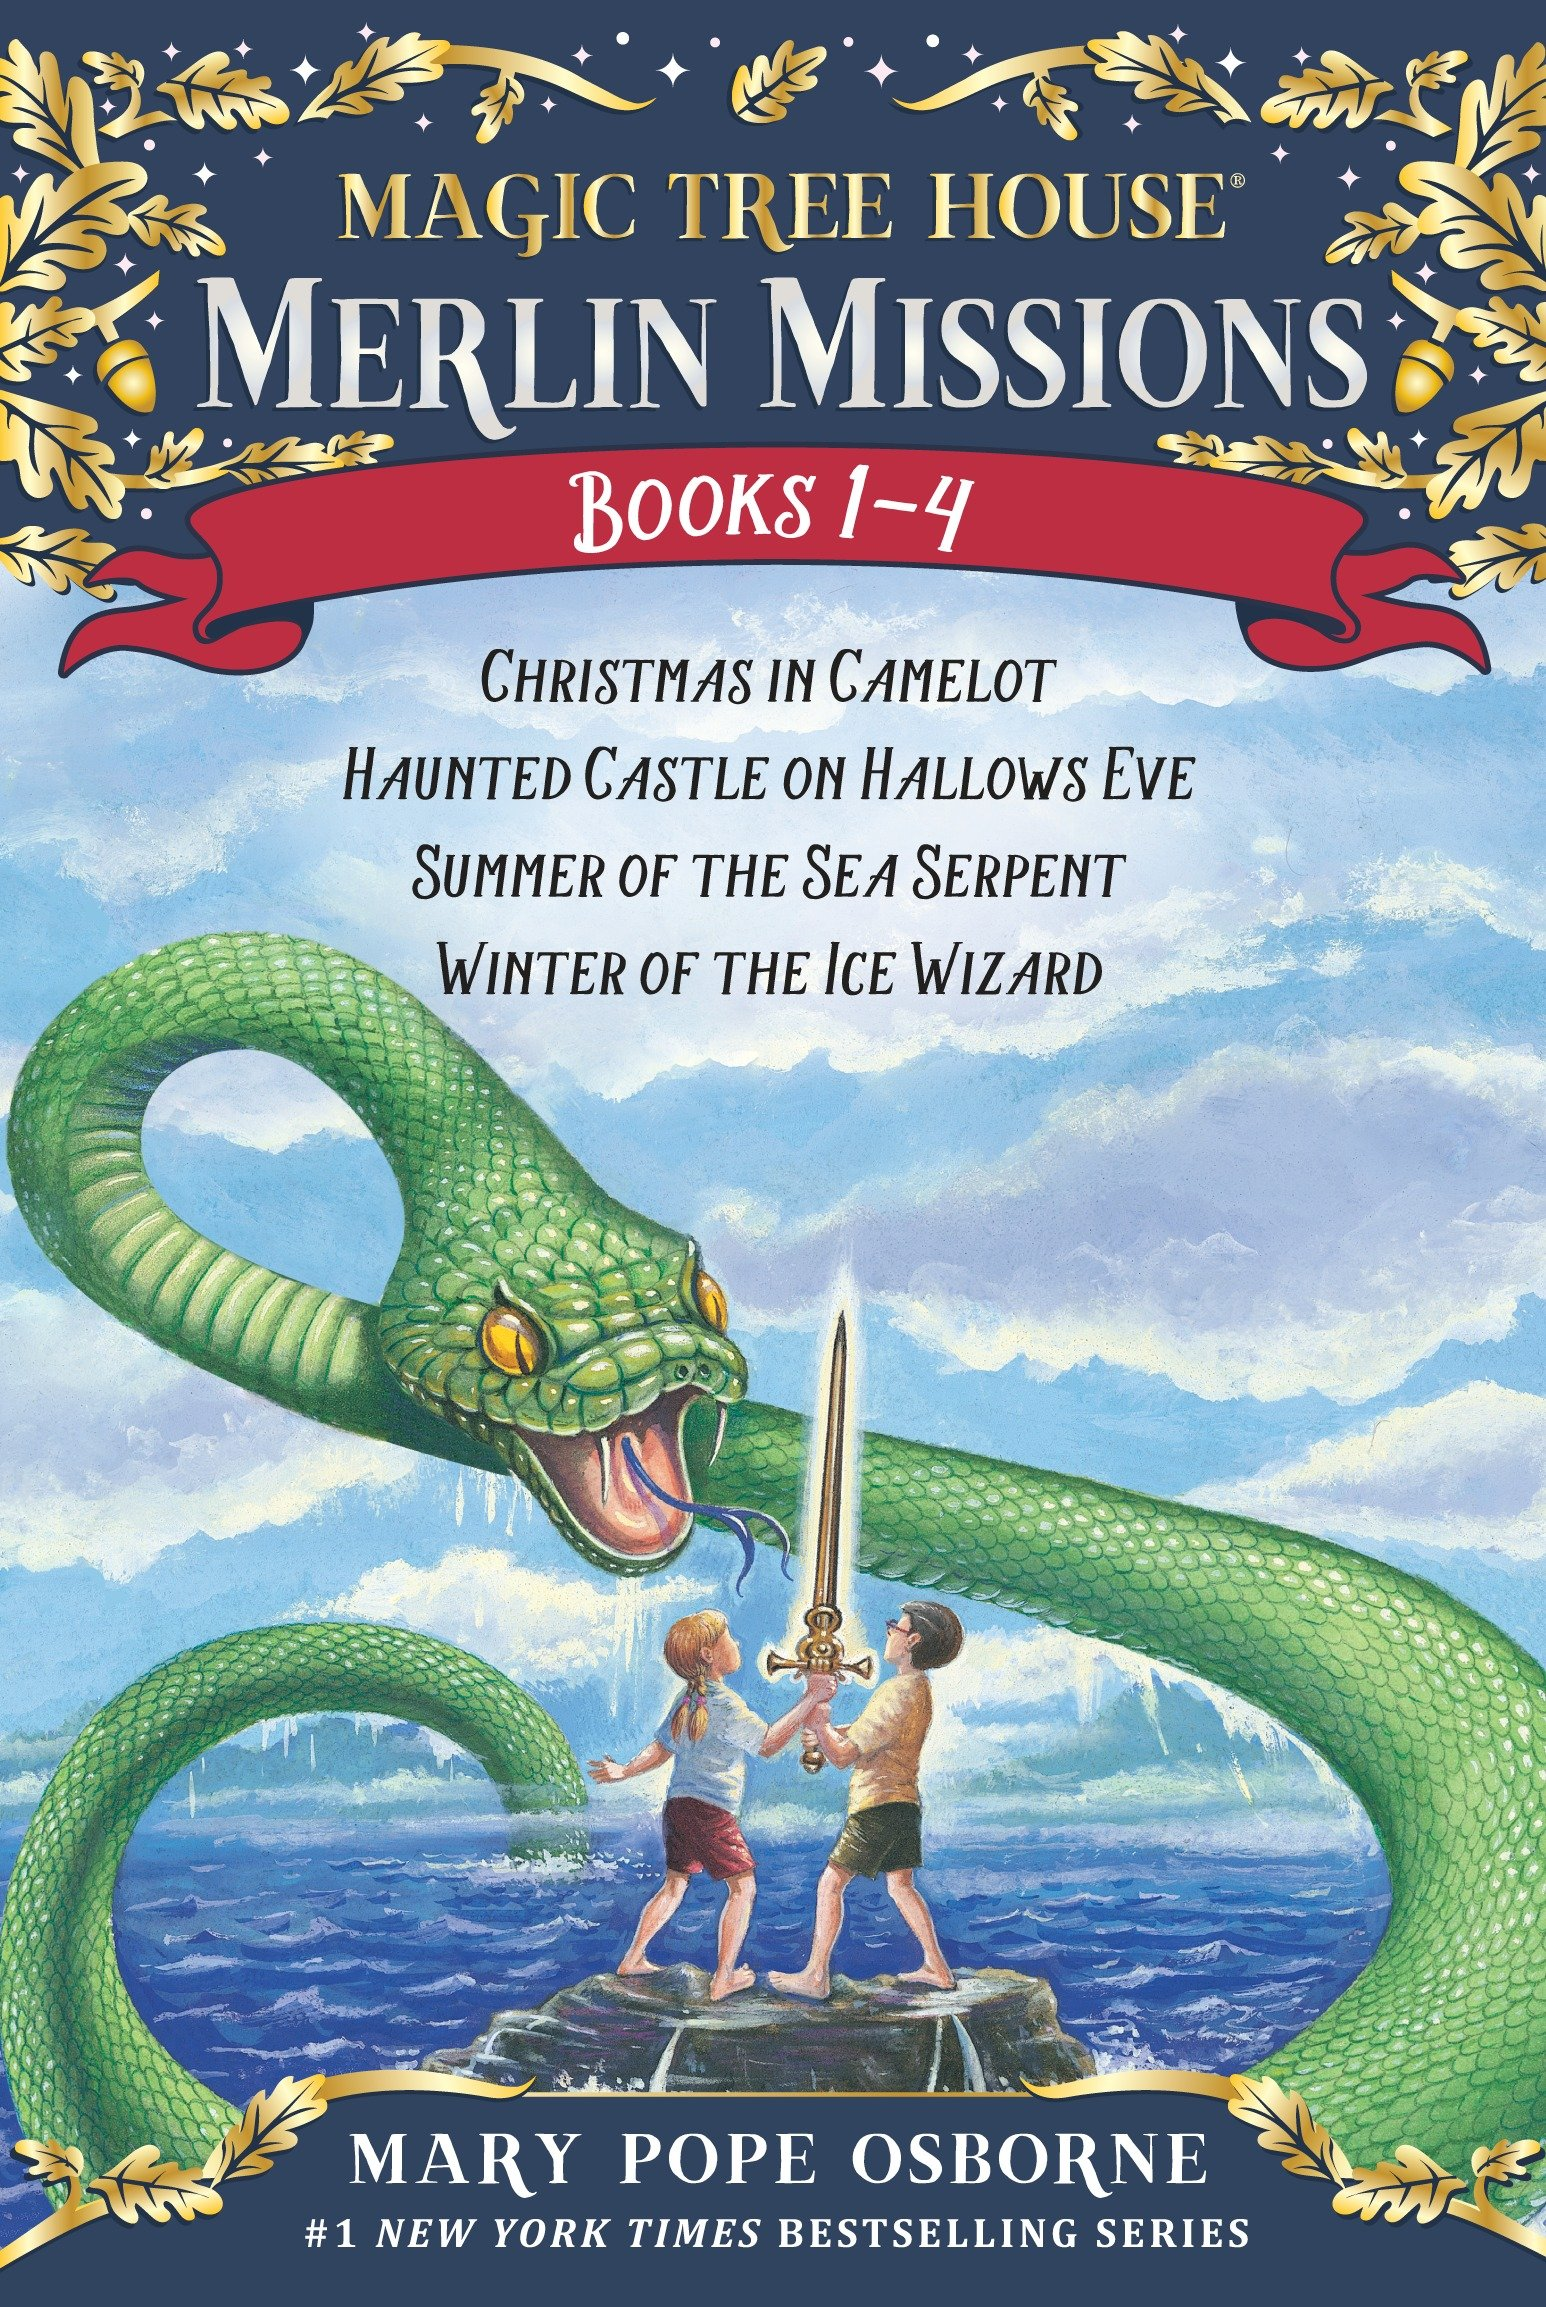 Magic Tree House Merlin Missions 1-4 cover image